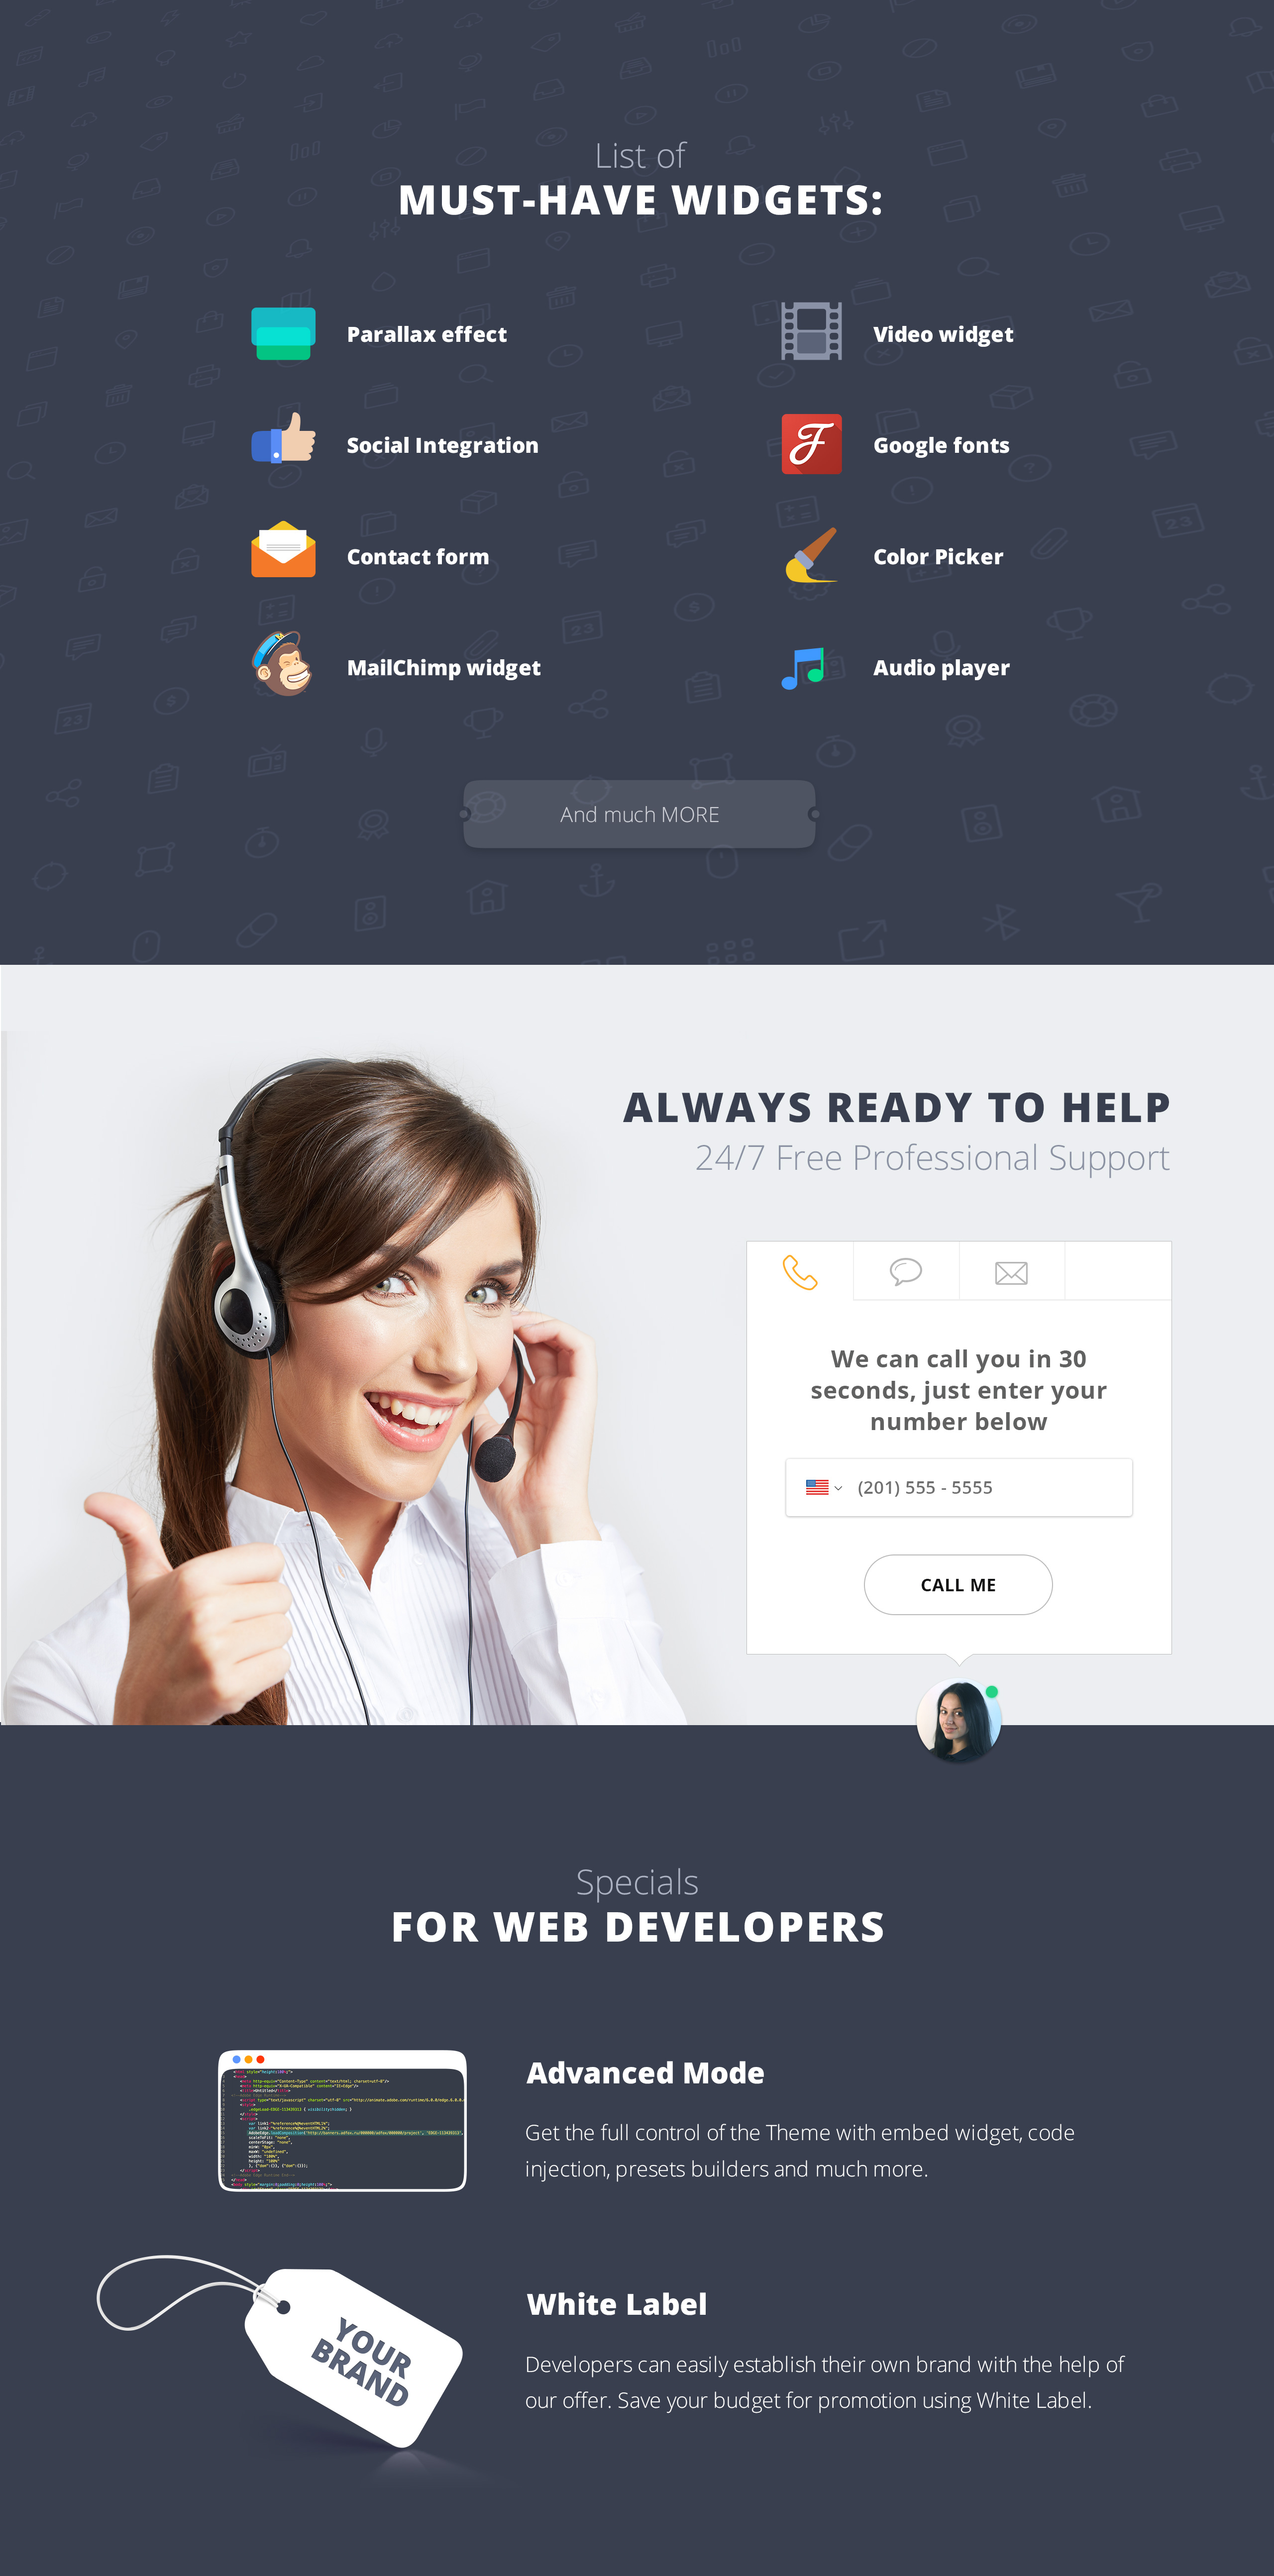 Gravitas - Beauty Expo MotoCMS 3 Landing Page Template